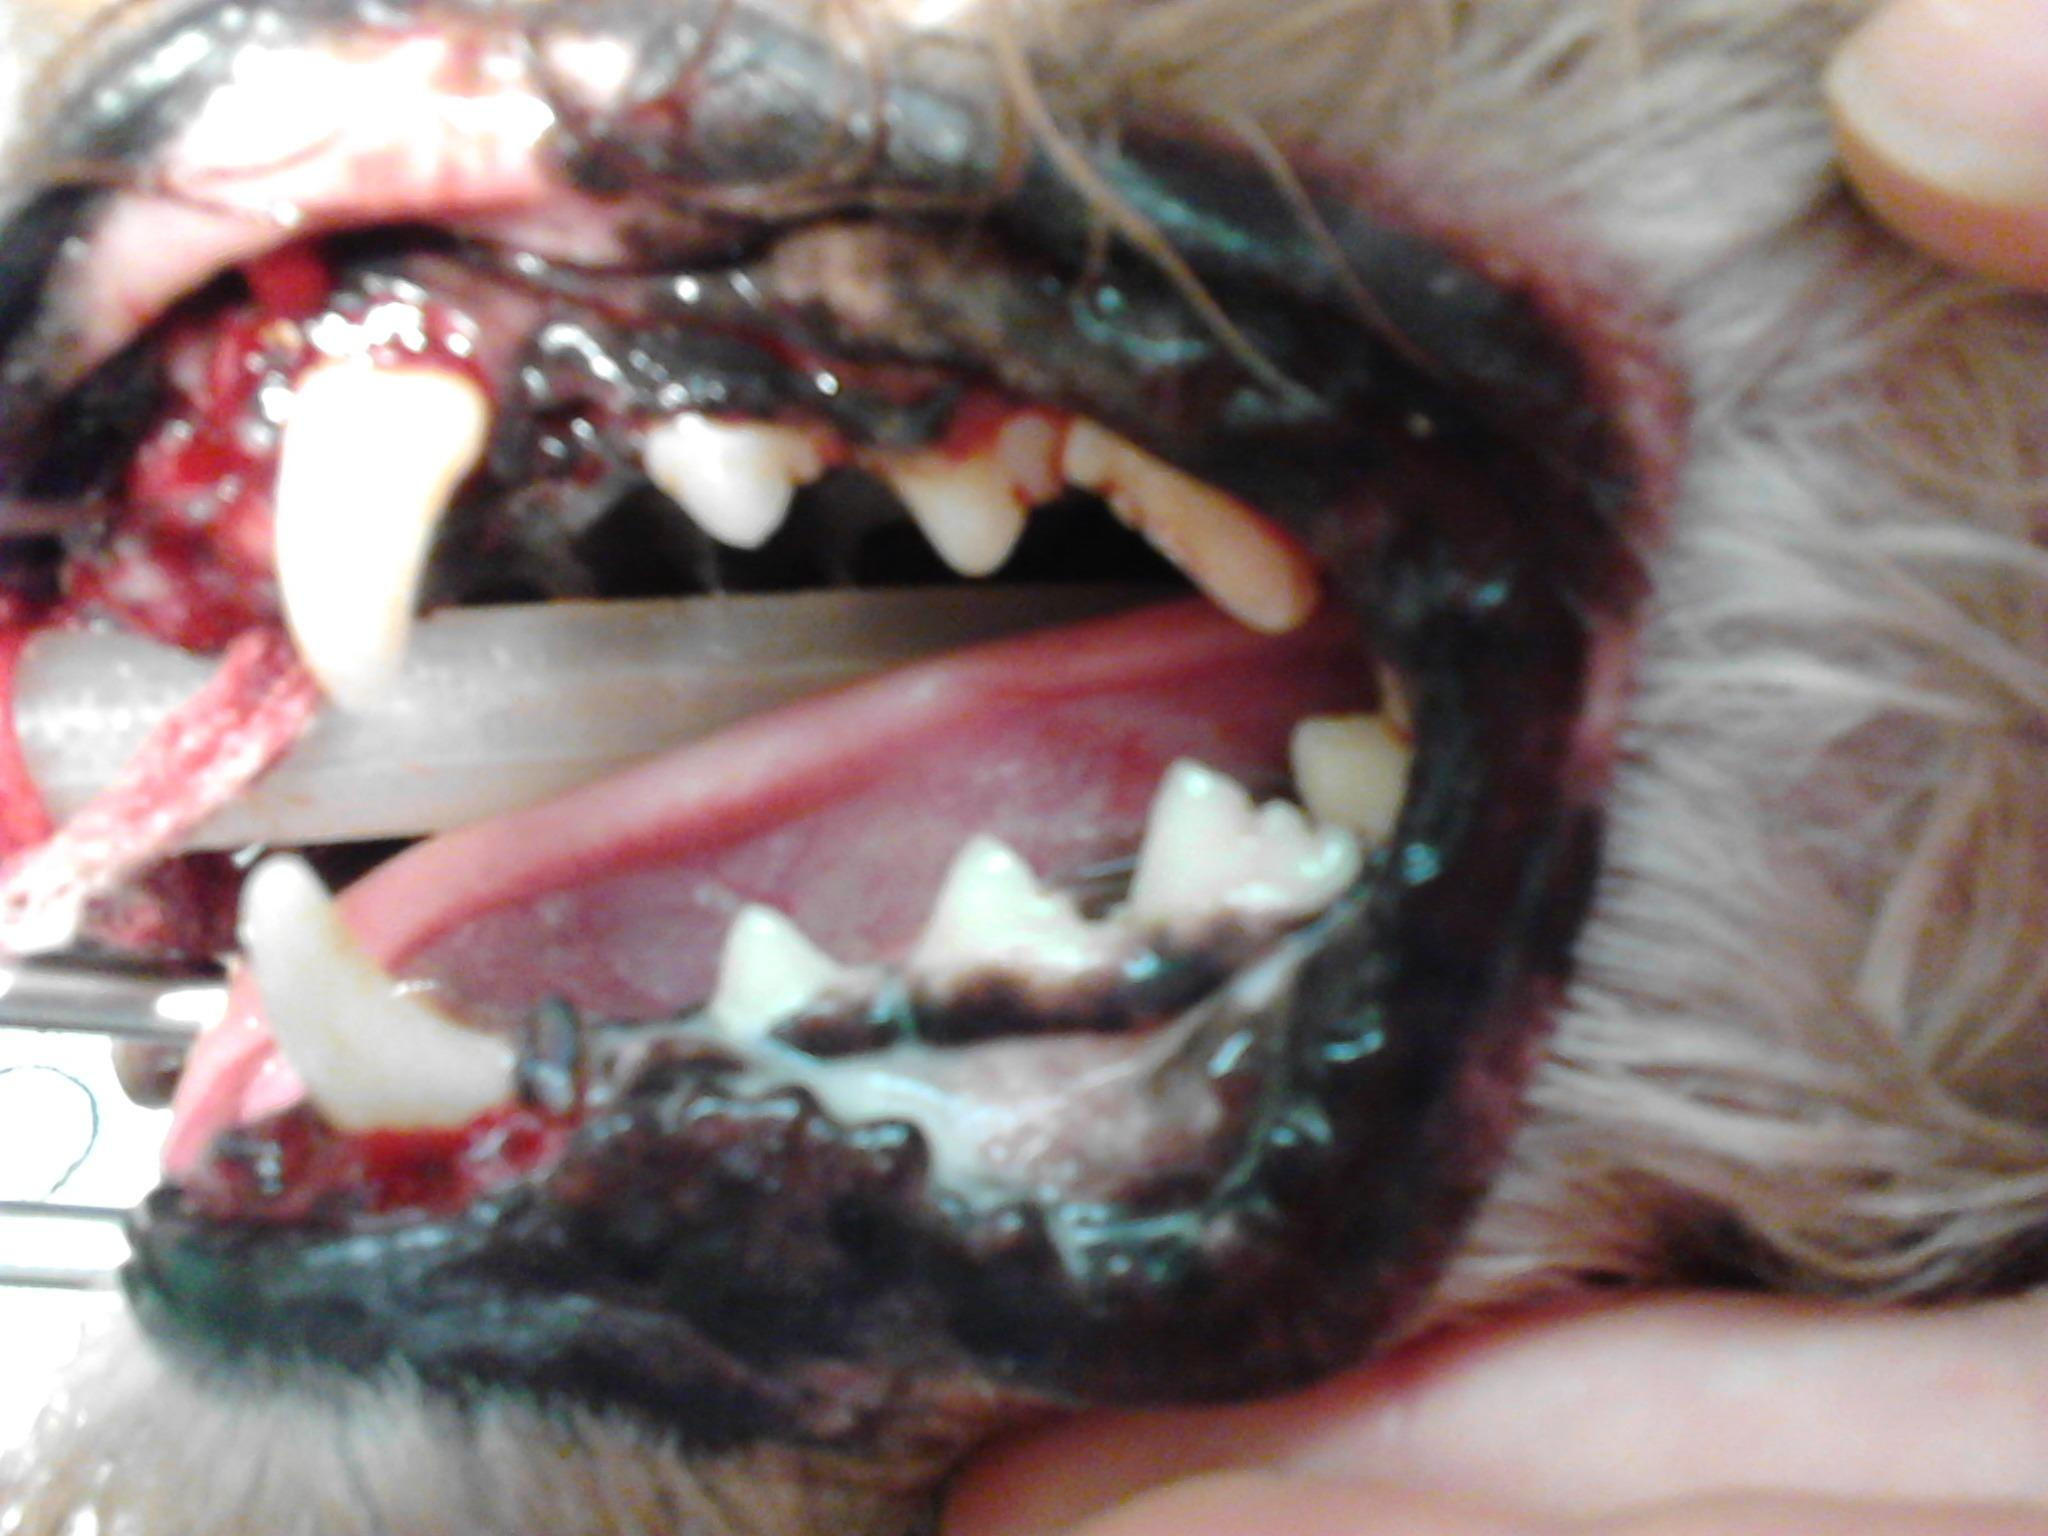 Rebel after dental treatment. Look at his pearly whites, a big difference!